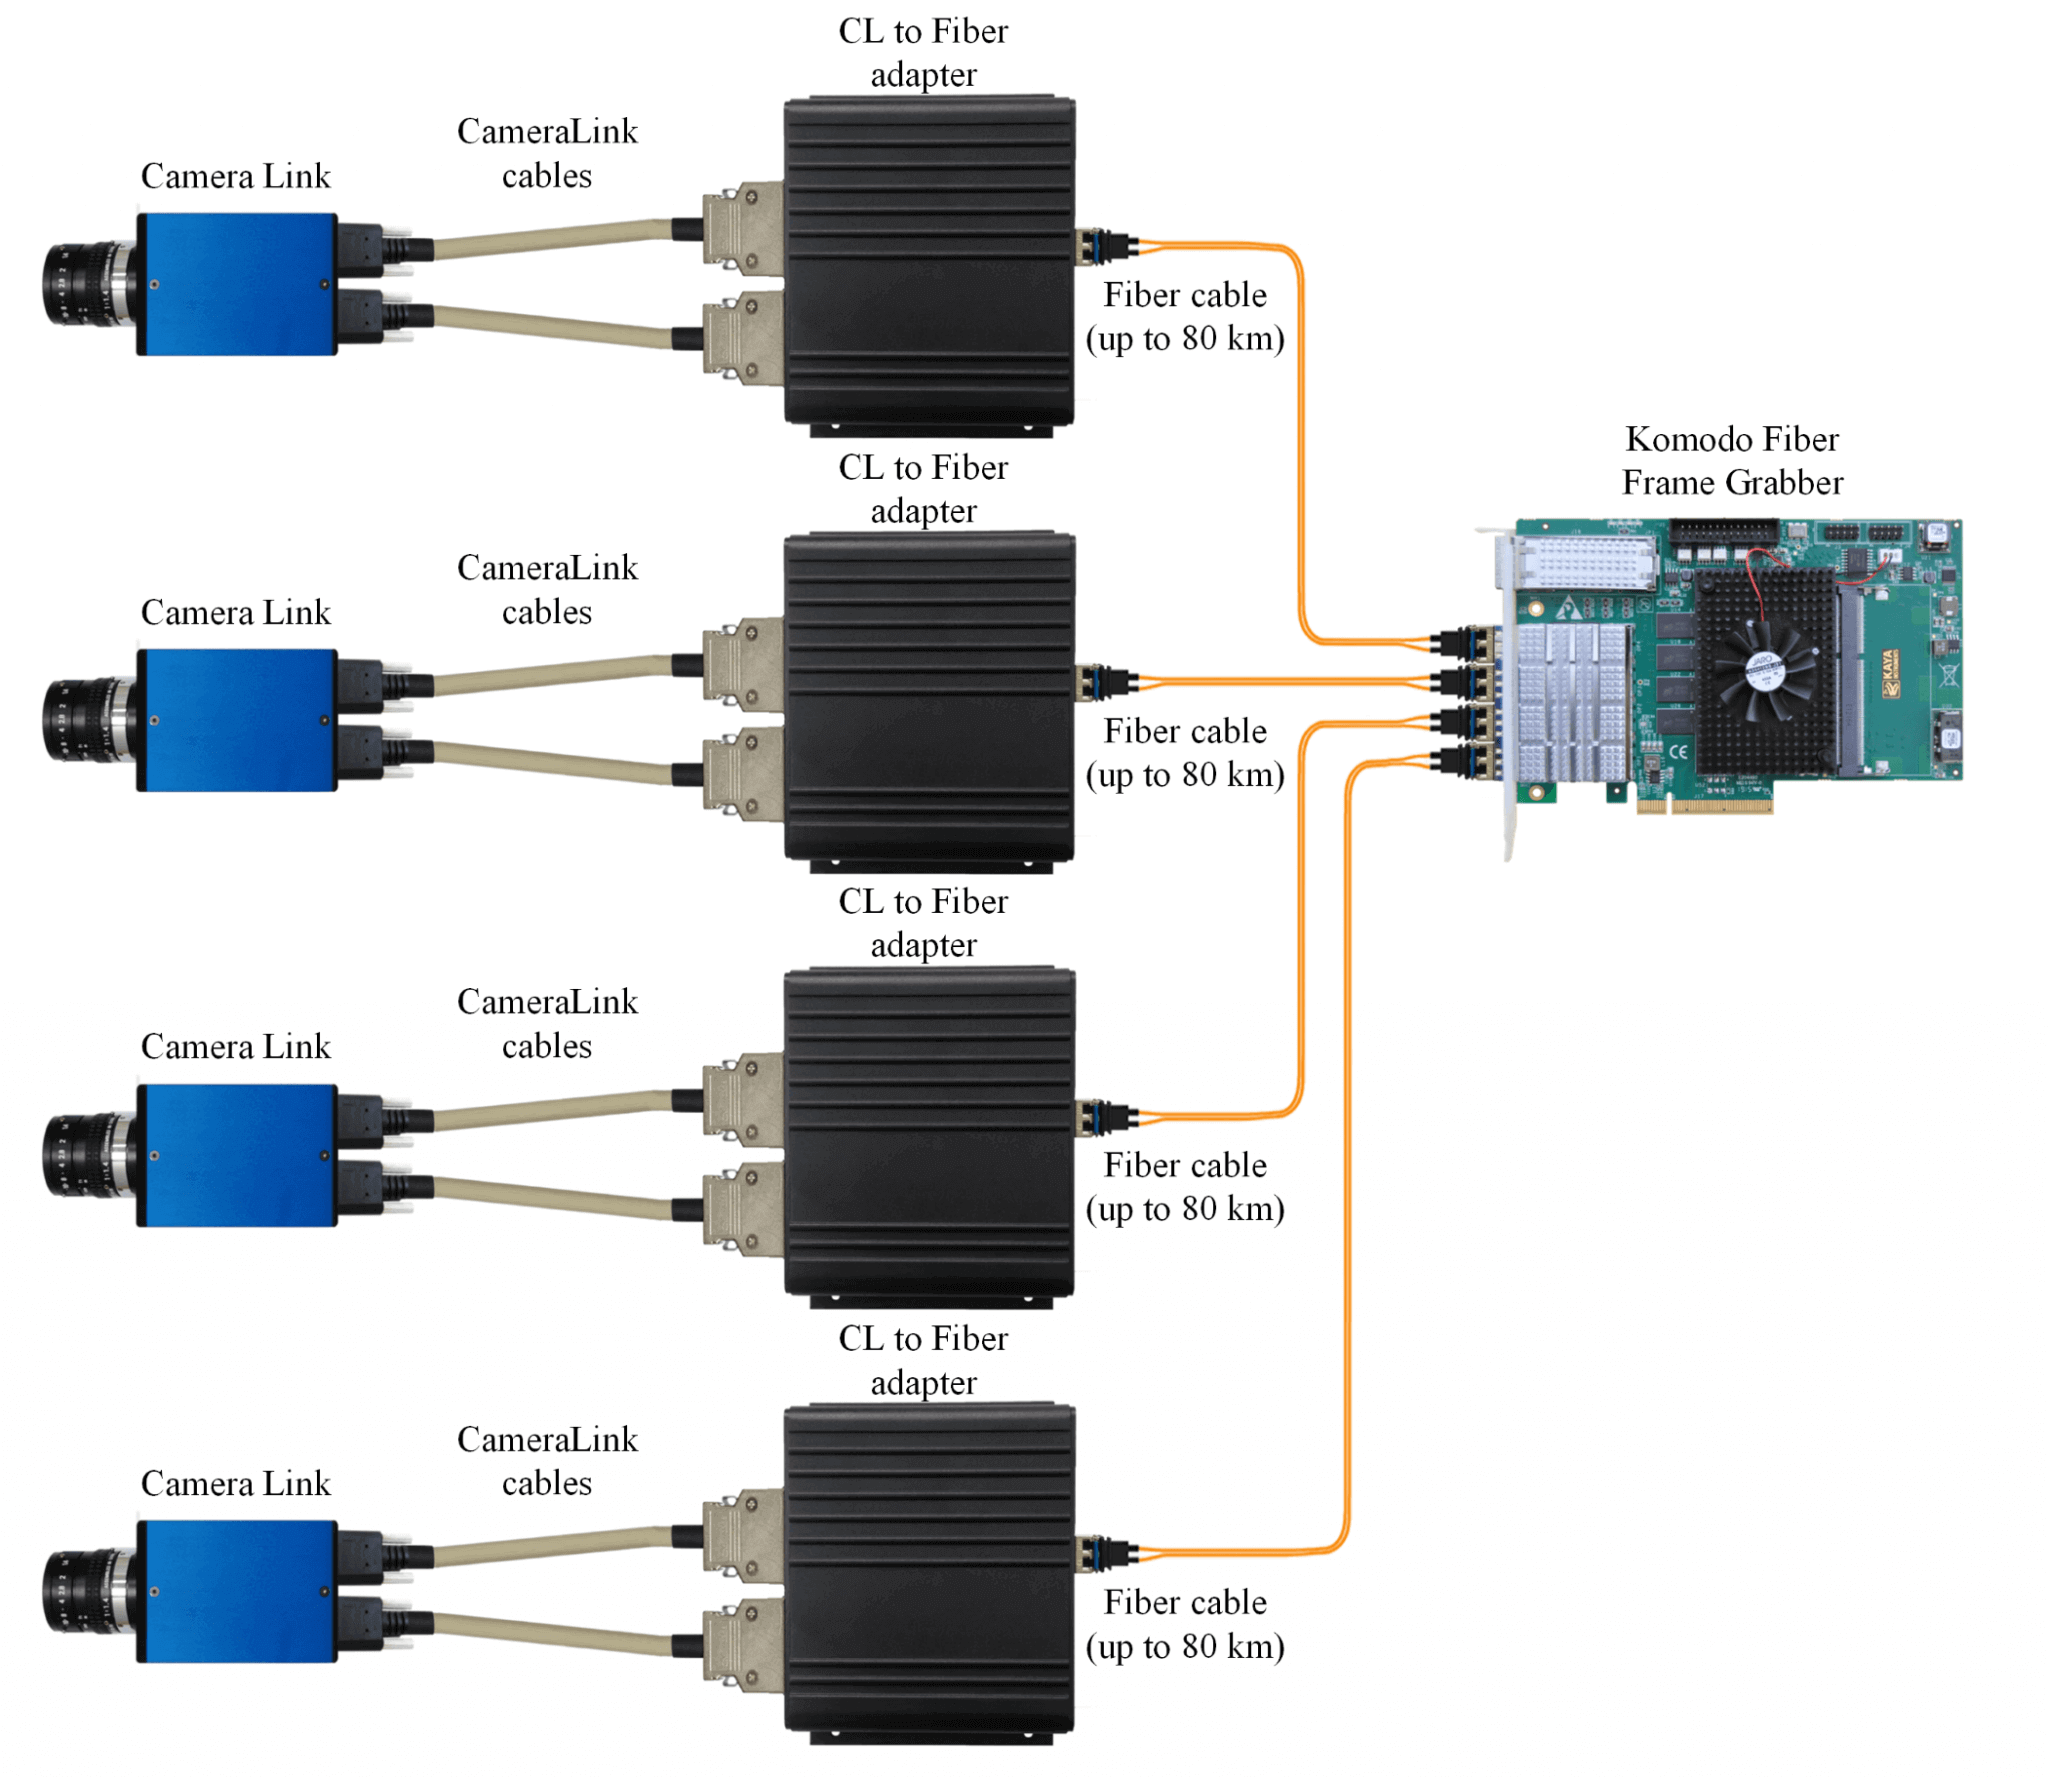 Komodo Fxcl System Kaya Instruments Fiber Optic Cablethe Global Solution In Components